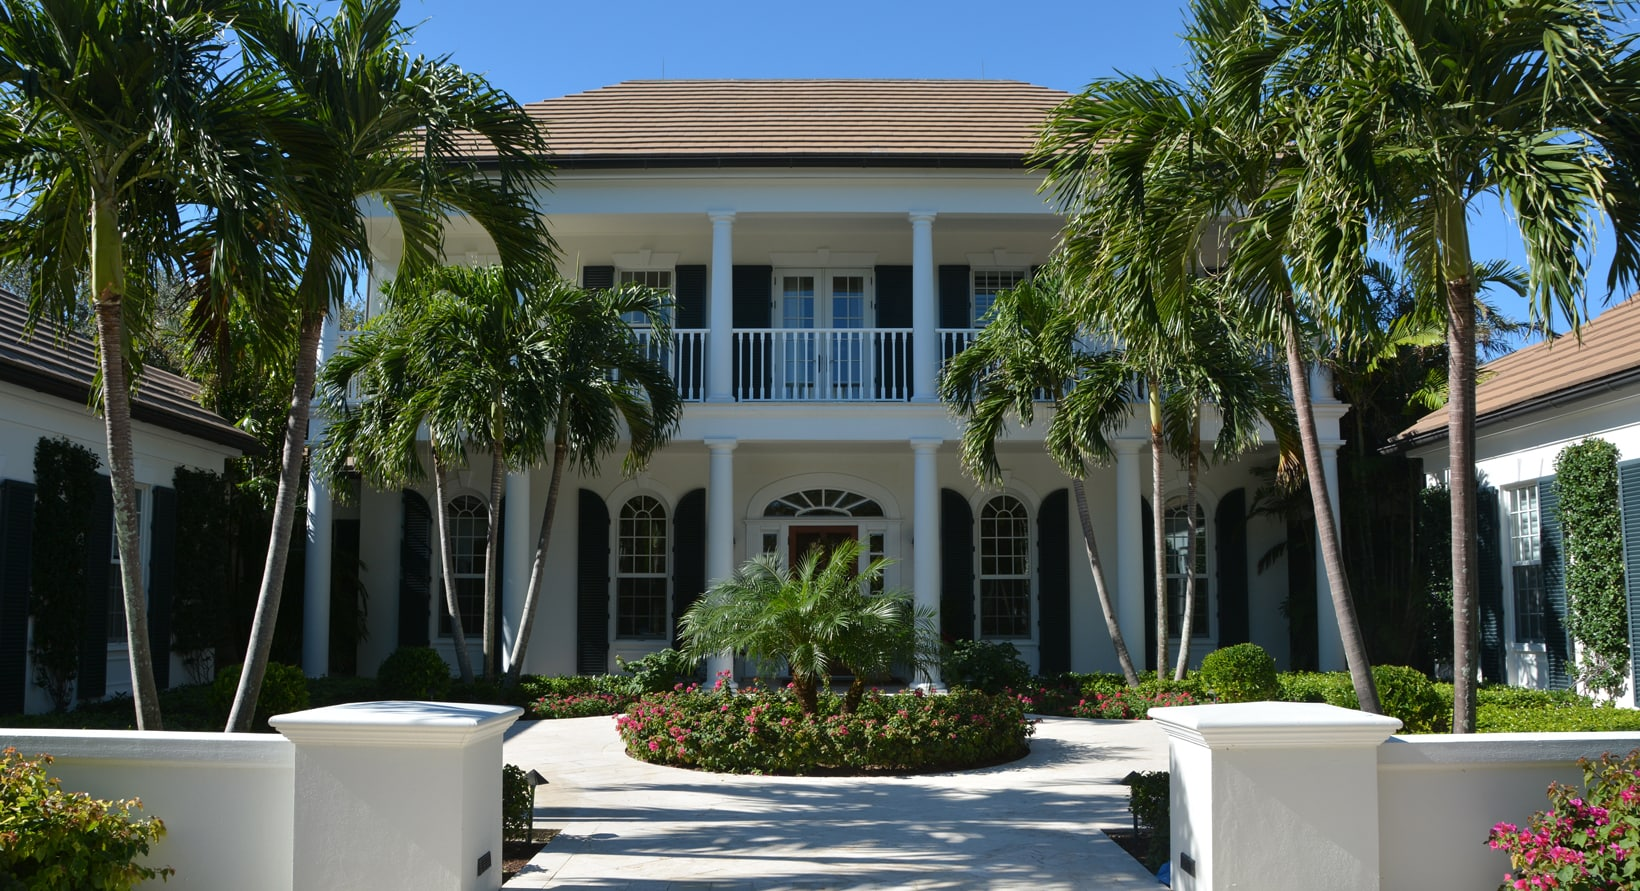 Aiello landscape vero beach home